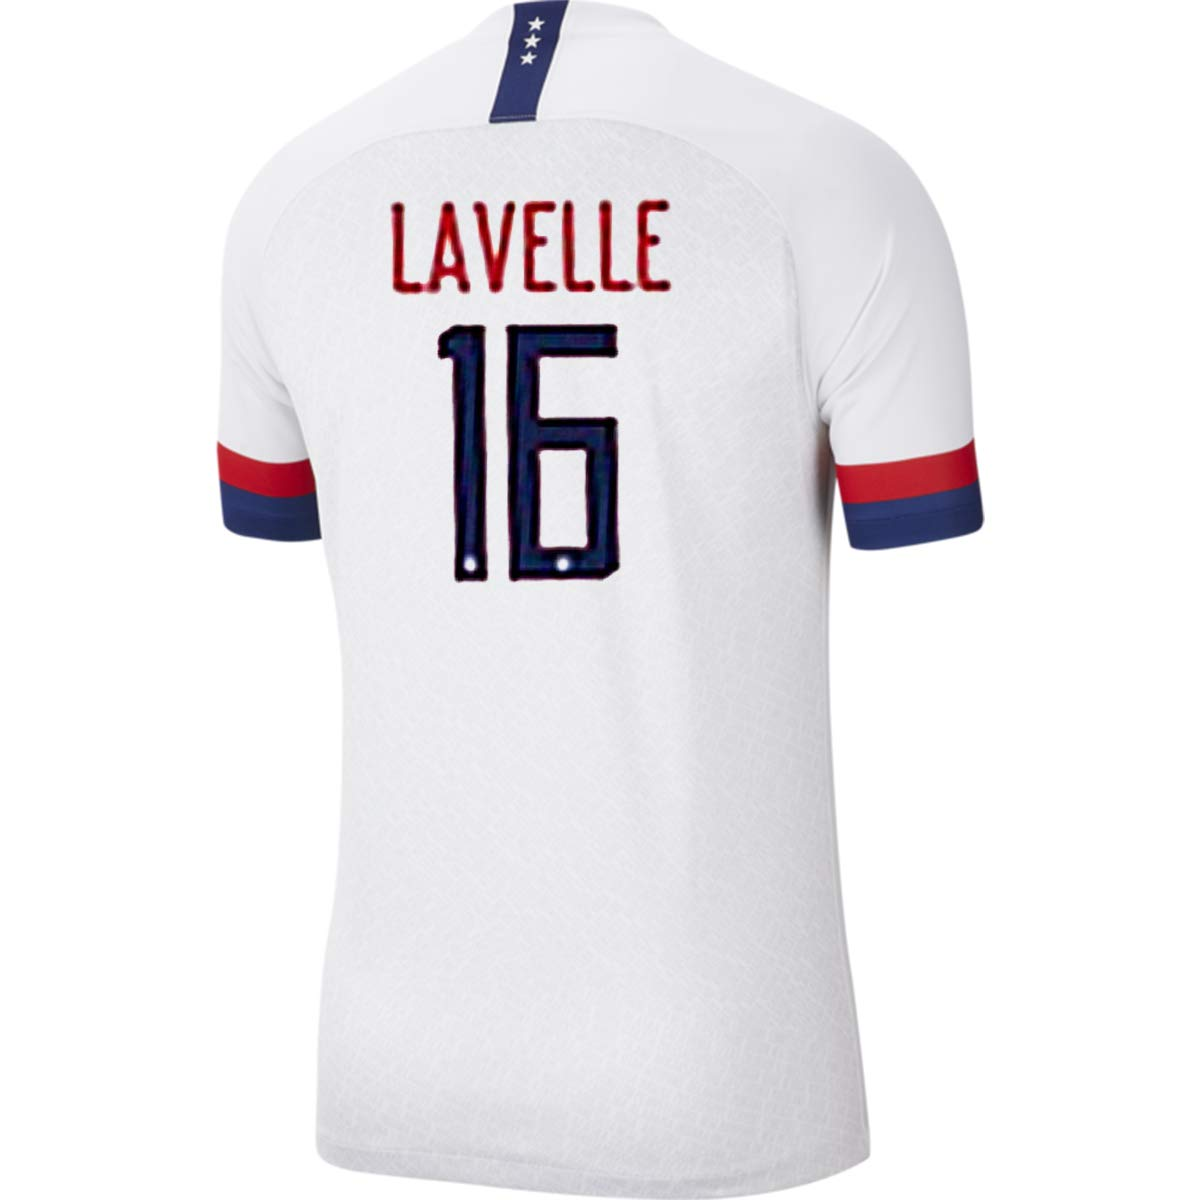 LVA Yum Mens Lavelle Jersey #16 2019 Womens World Cup Home Soccer Jersey Colour White